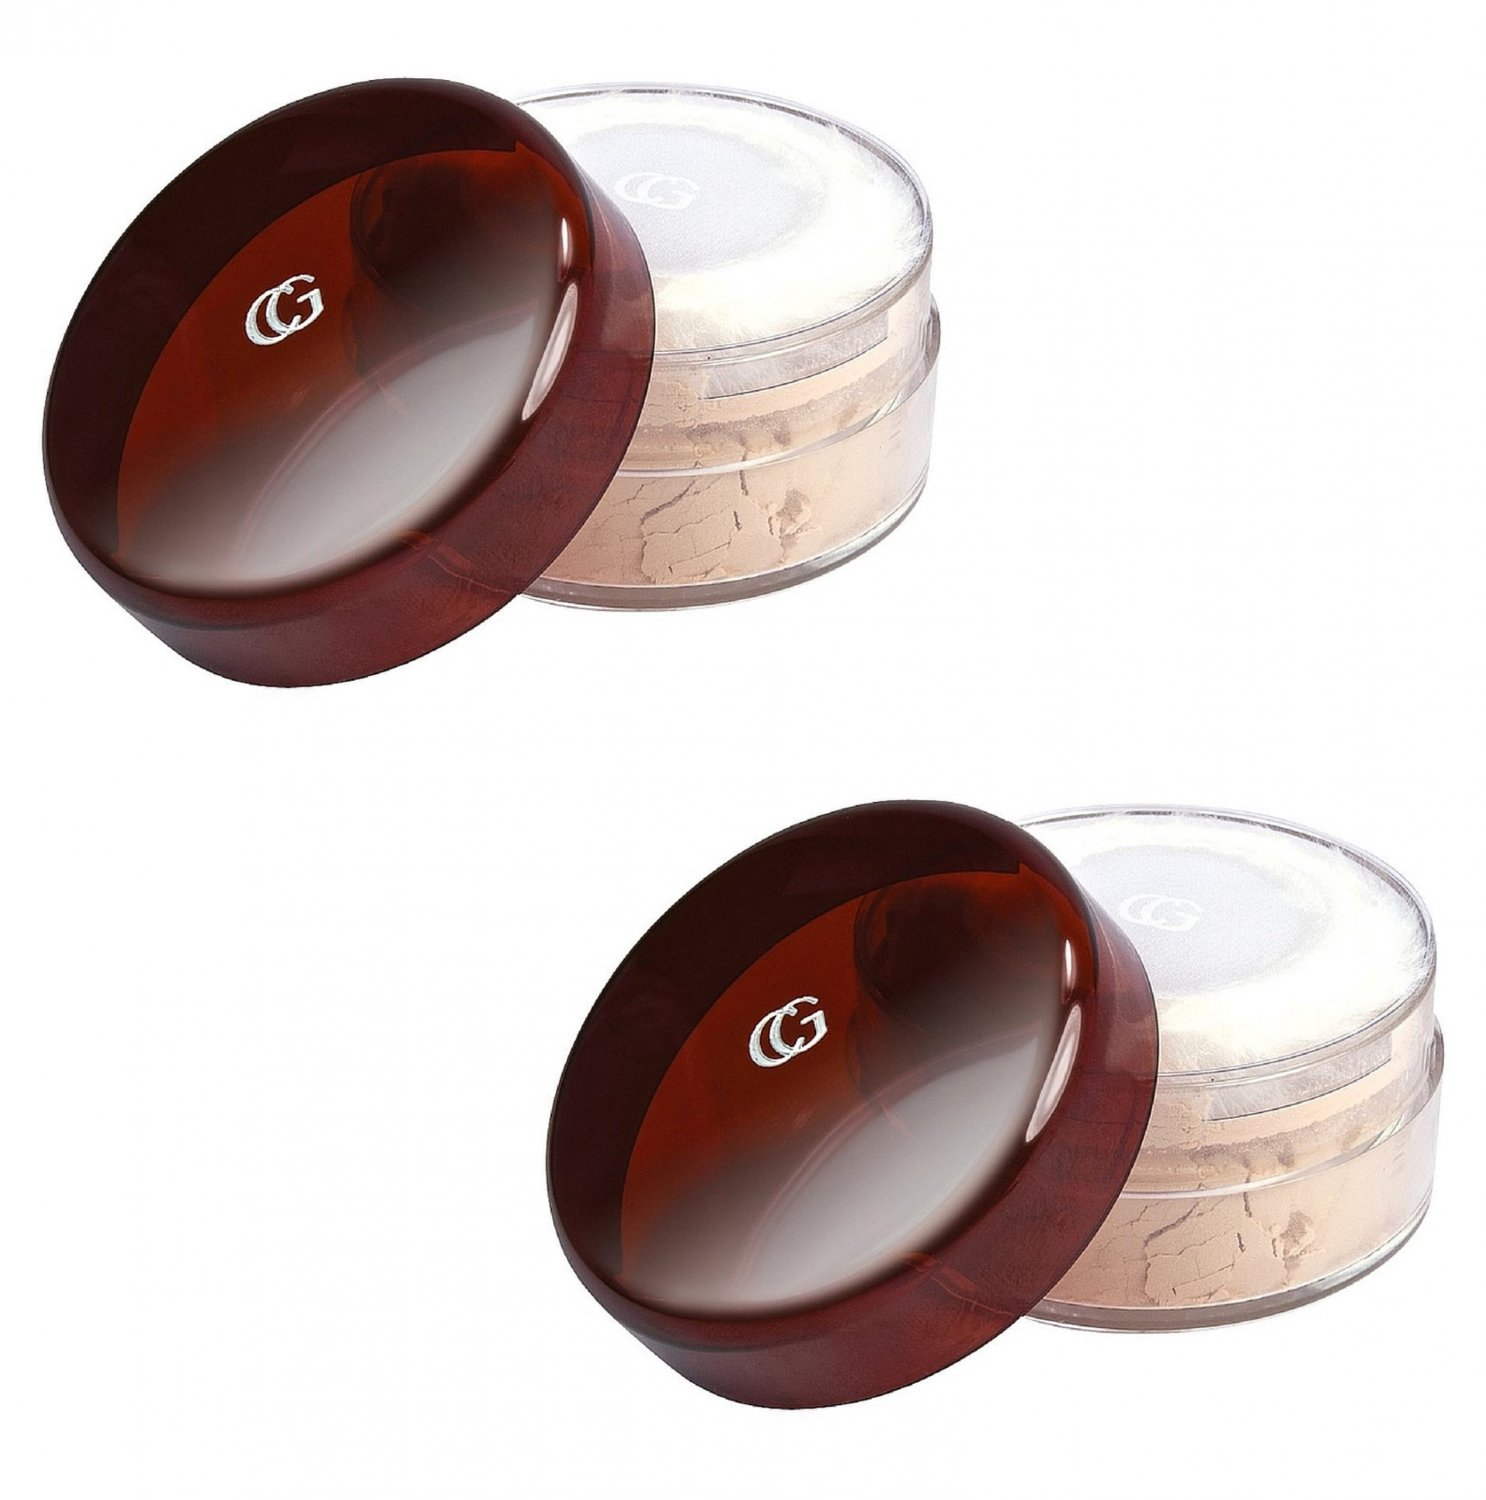 COVERGIRL Professional Loose Powder Translucent Light 0.70 Oz (Pack of 2)